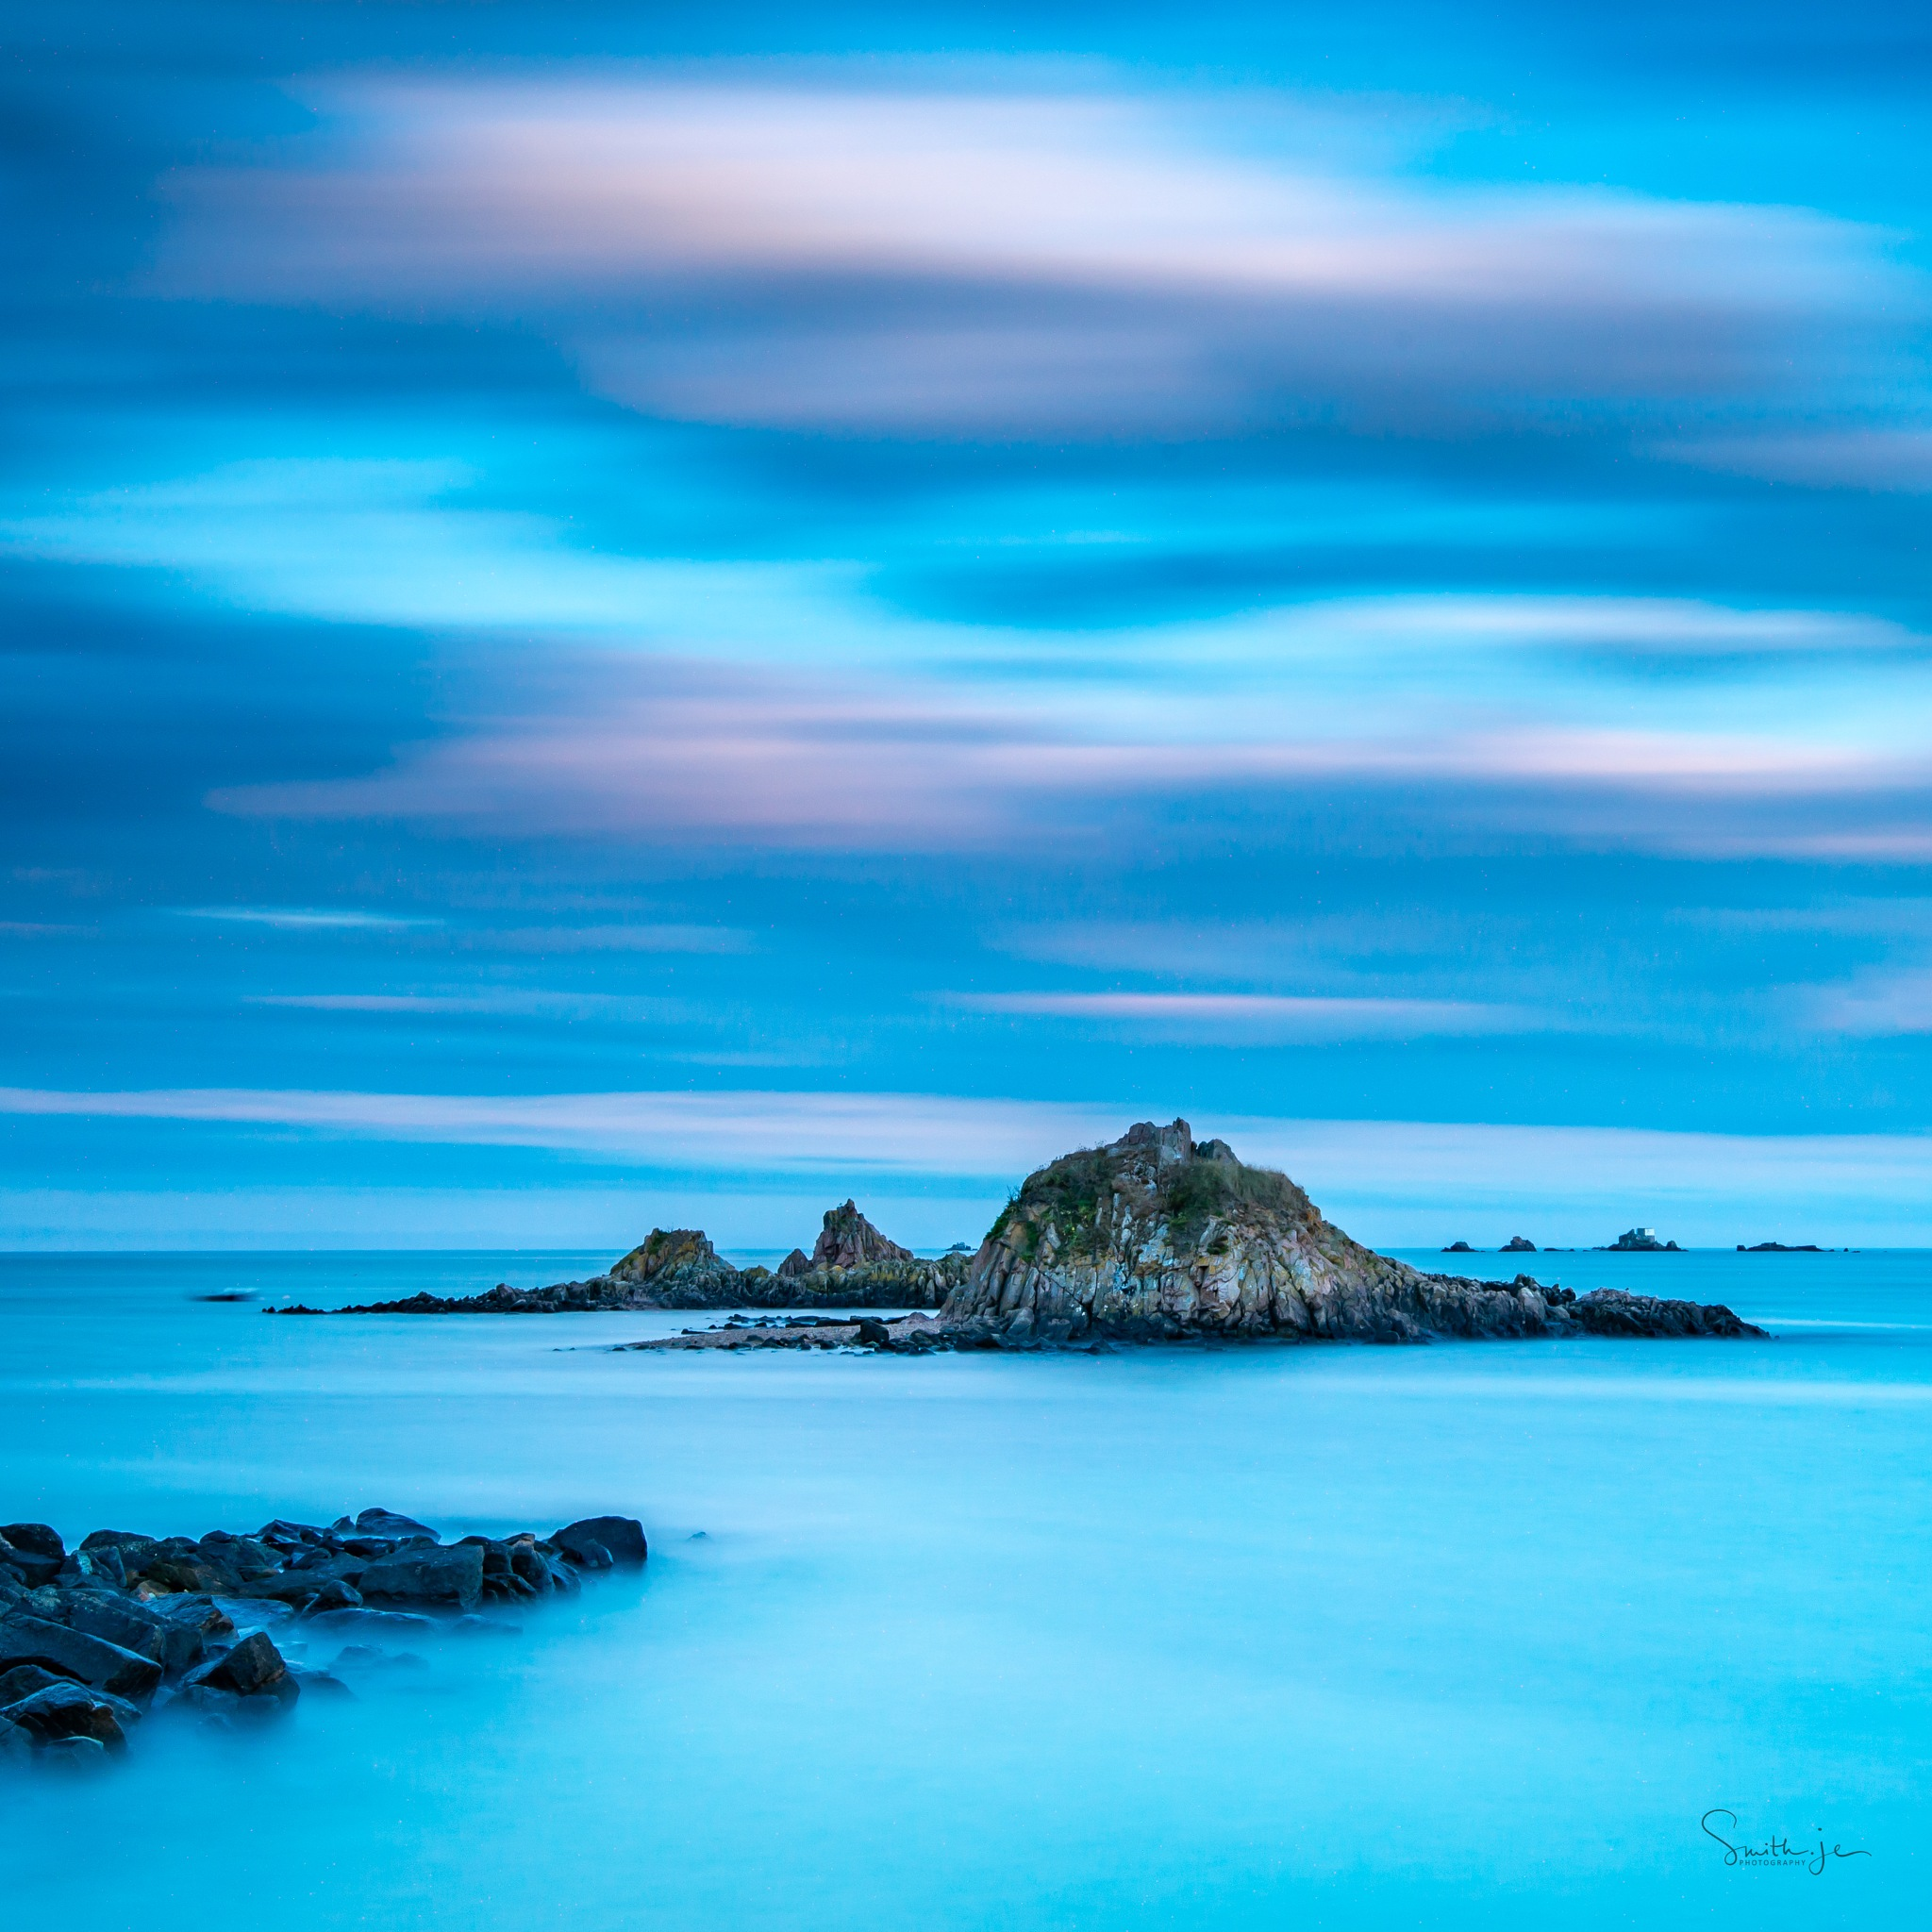 Evening blues at Le Hocq by Smith.je Photography